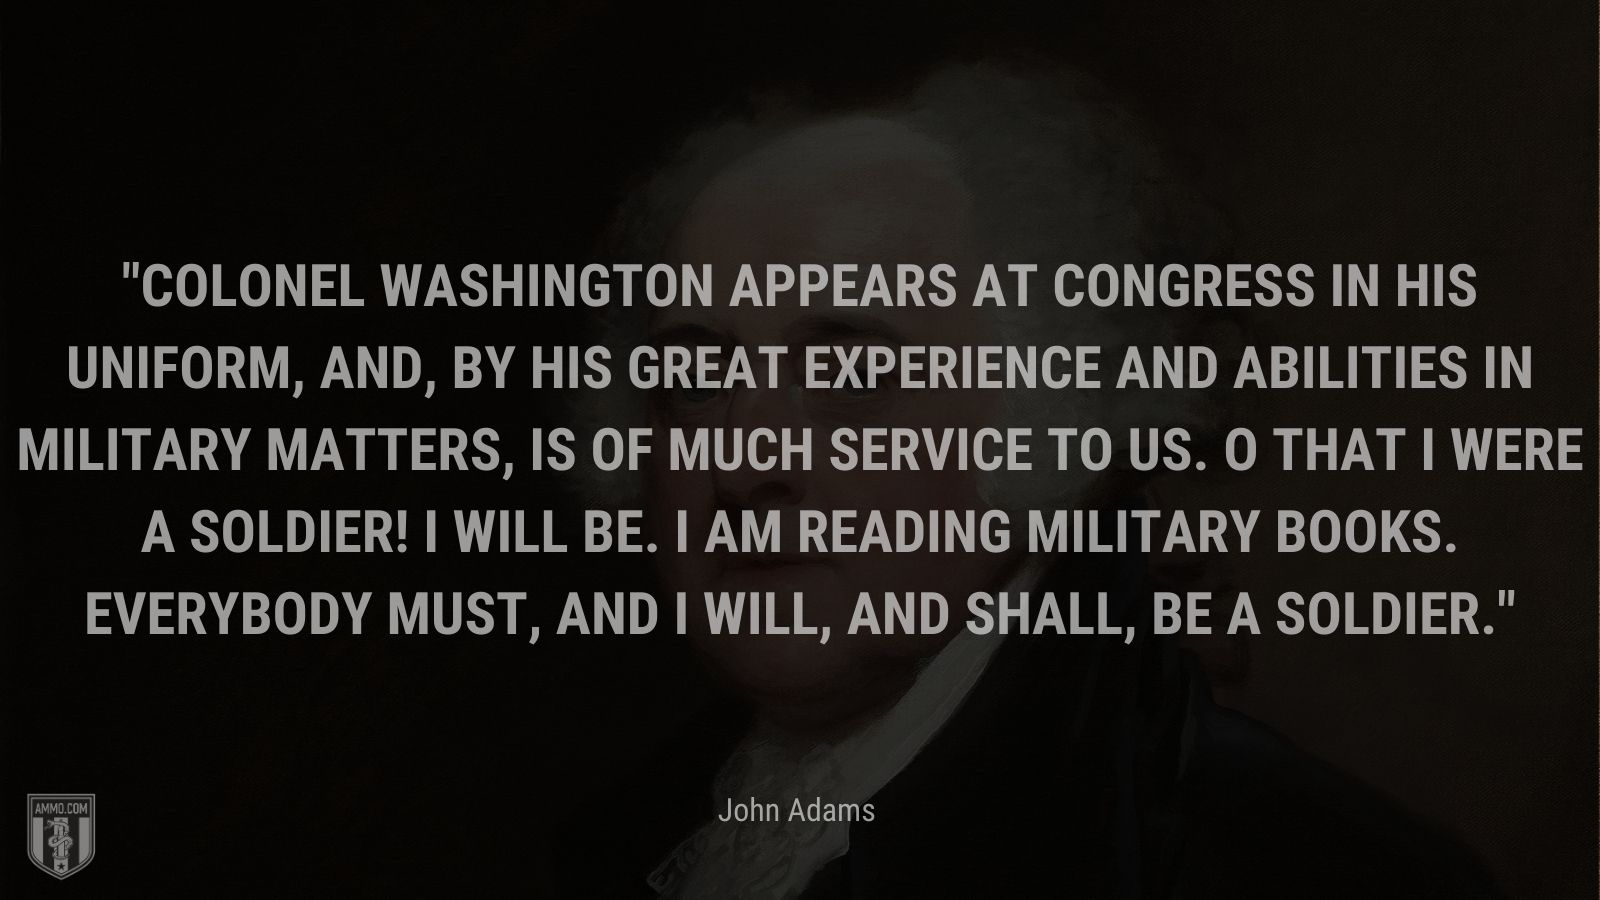 """""""Colonel Washington appears at Congress in his uniform, and, by his great experience and abilities in military matters, is of much service to us. O that I were a soldier! I will be. I am reading military books. Everybody must, and I will, and shall, be a soldier."""" - John Adams"""